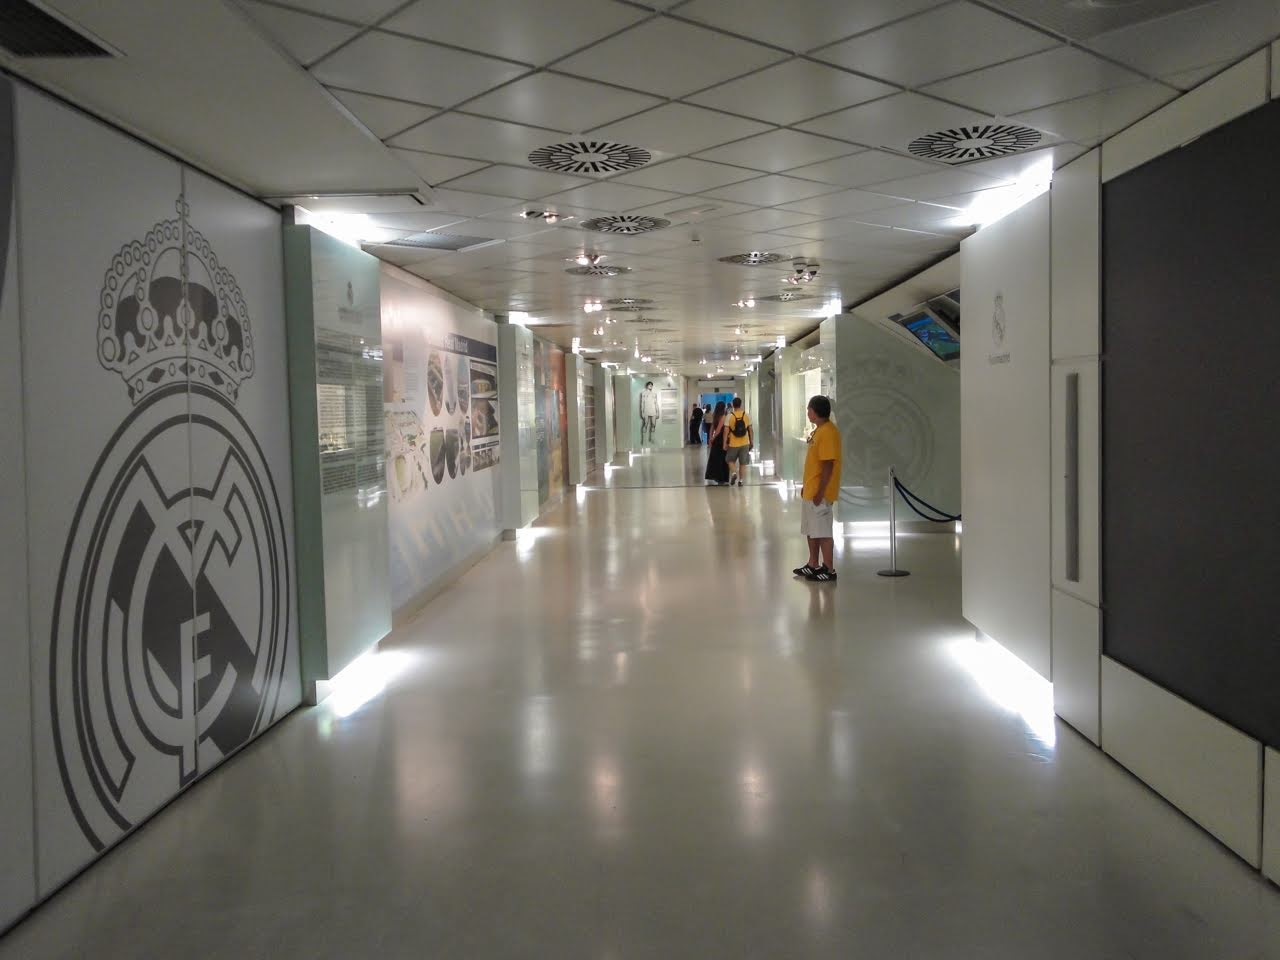 A hallway leading us through the history of the Real Madrid club